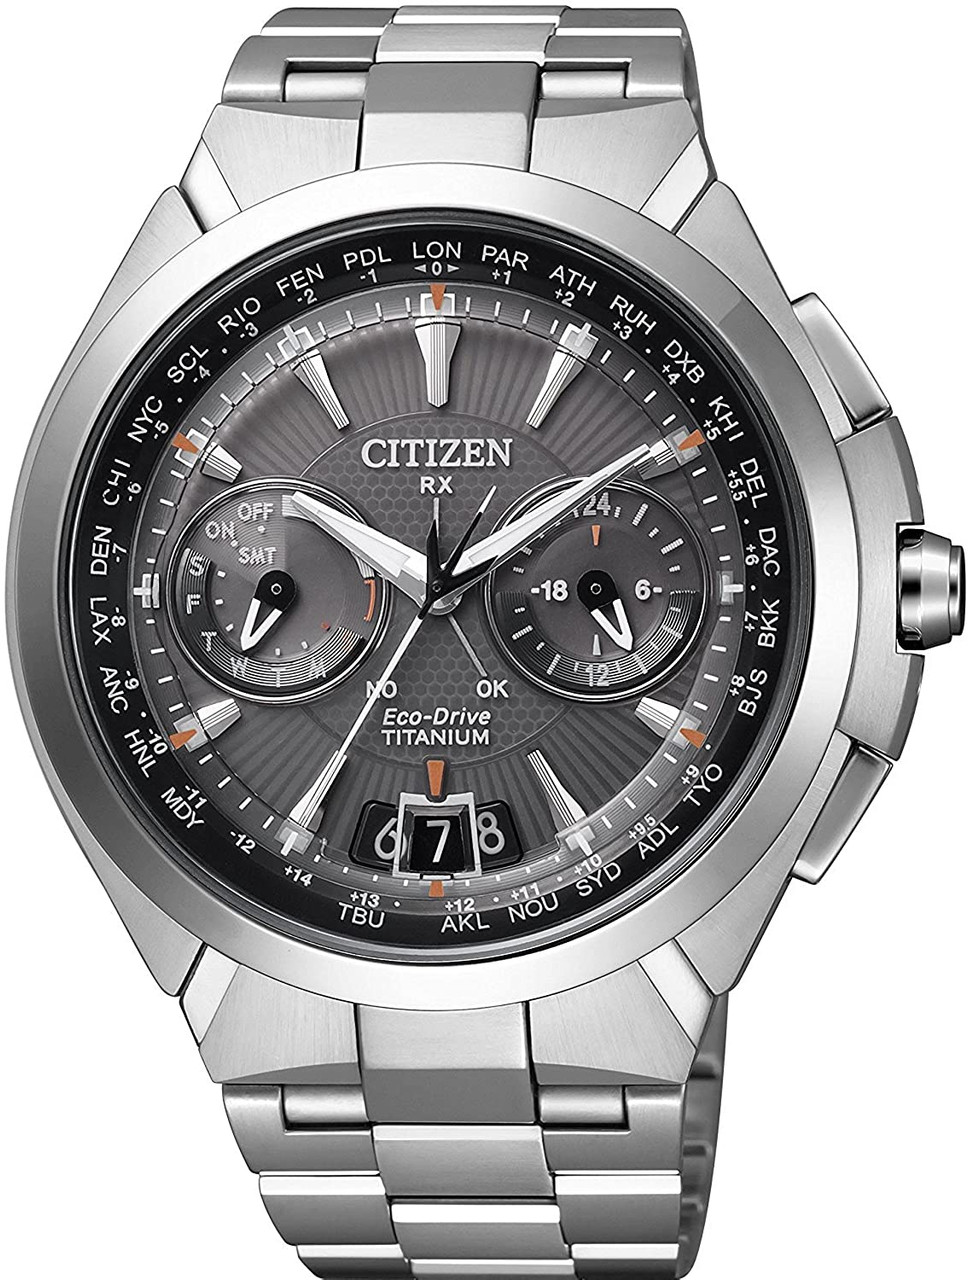 Citizen Satellite Wave GPS CC1080-56E Attesa